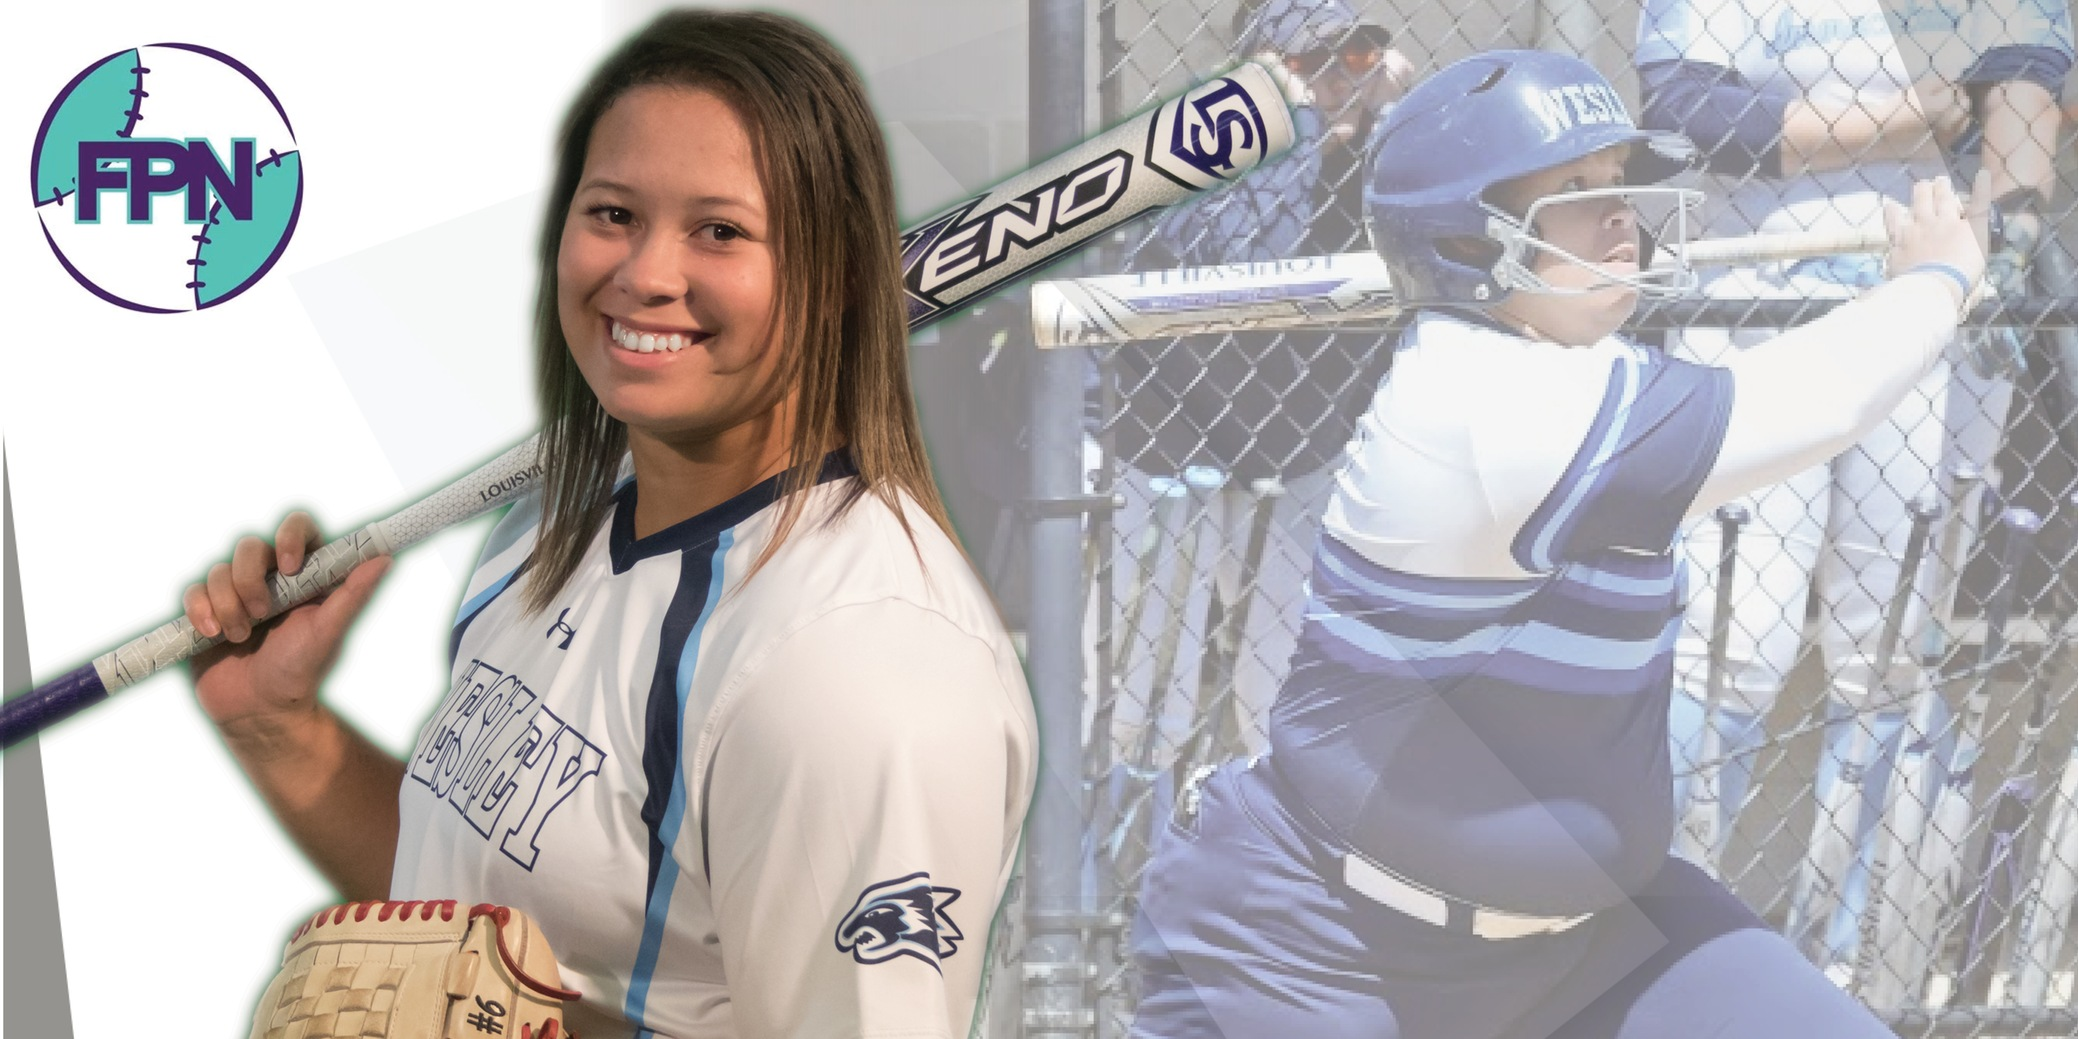 Dalious earns Fastpitch News National Player of the Week honors